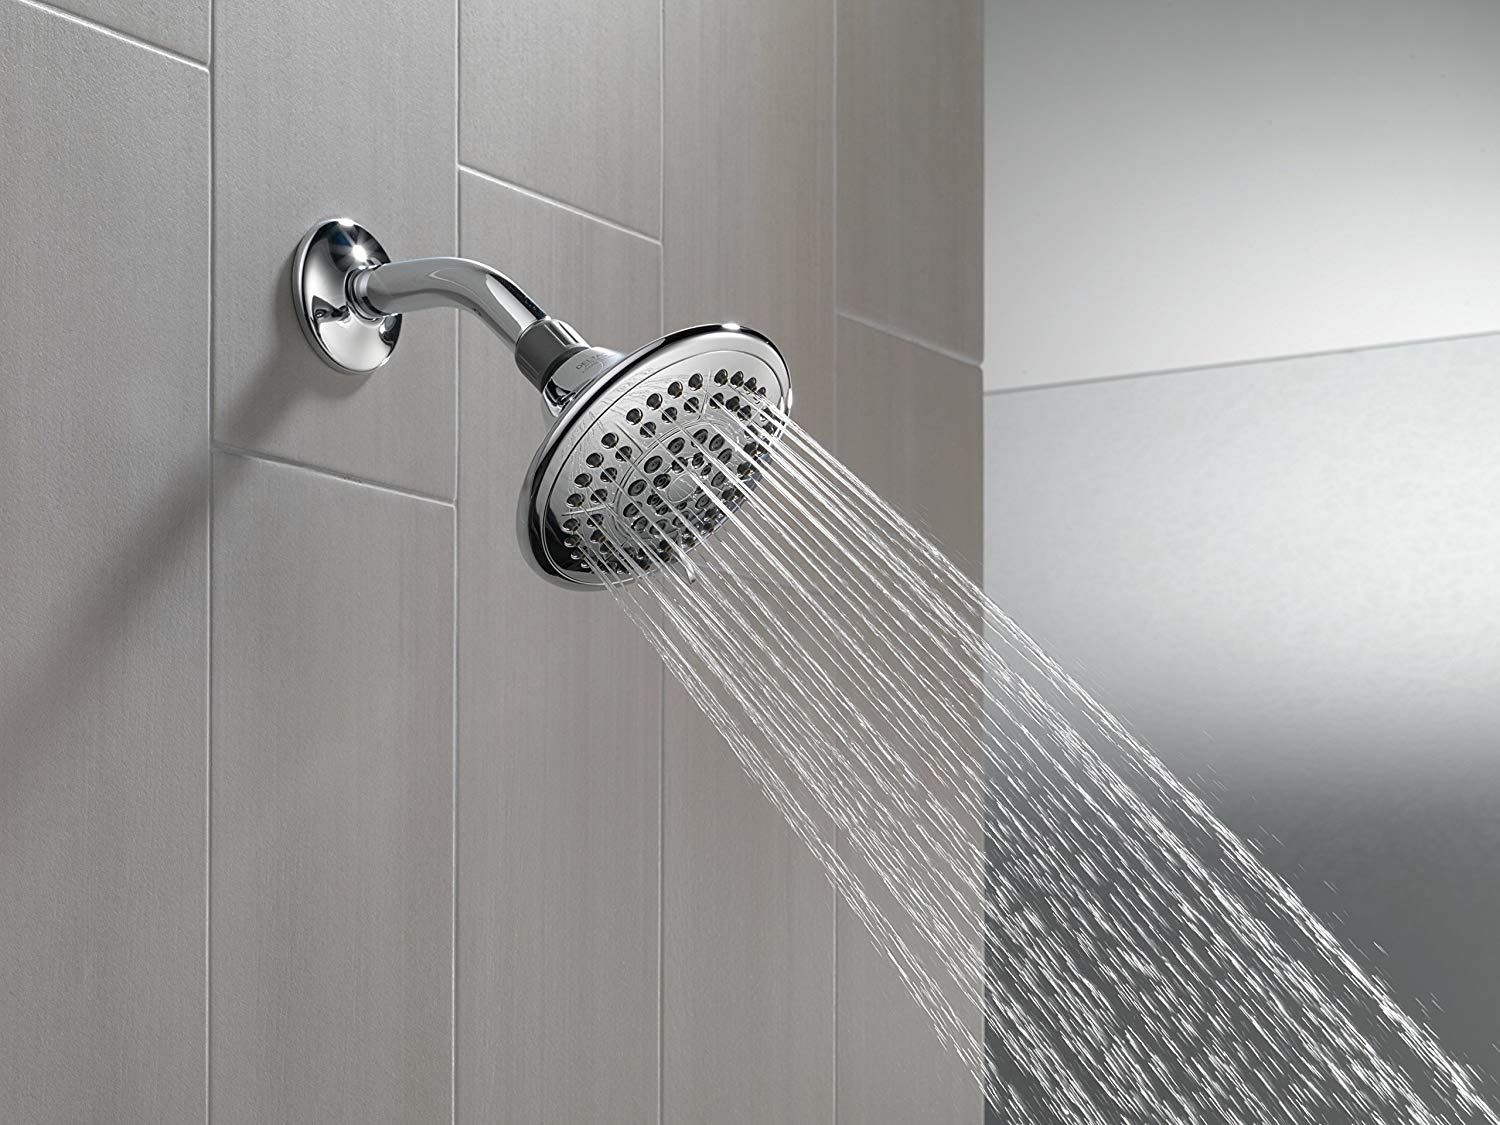 Best Water Saving Shower Head 2018 The Homester